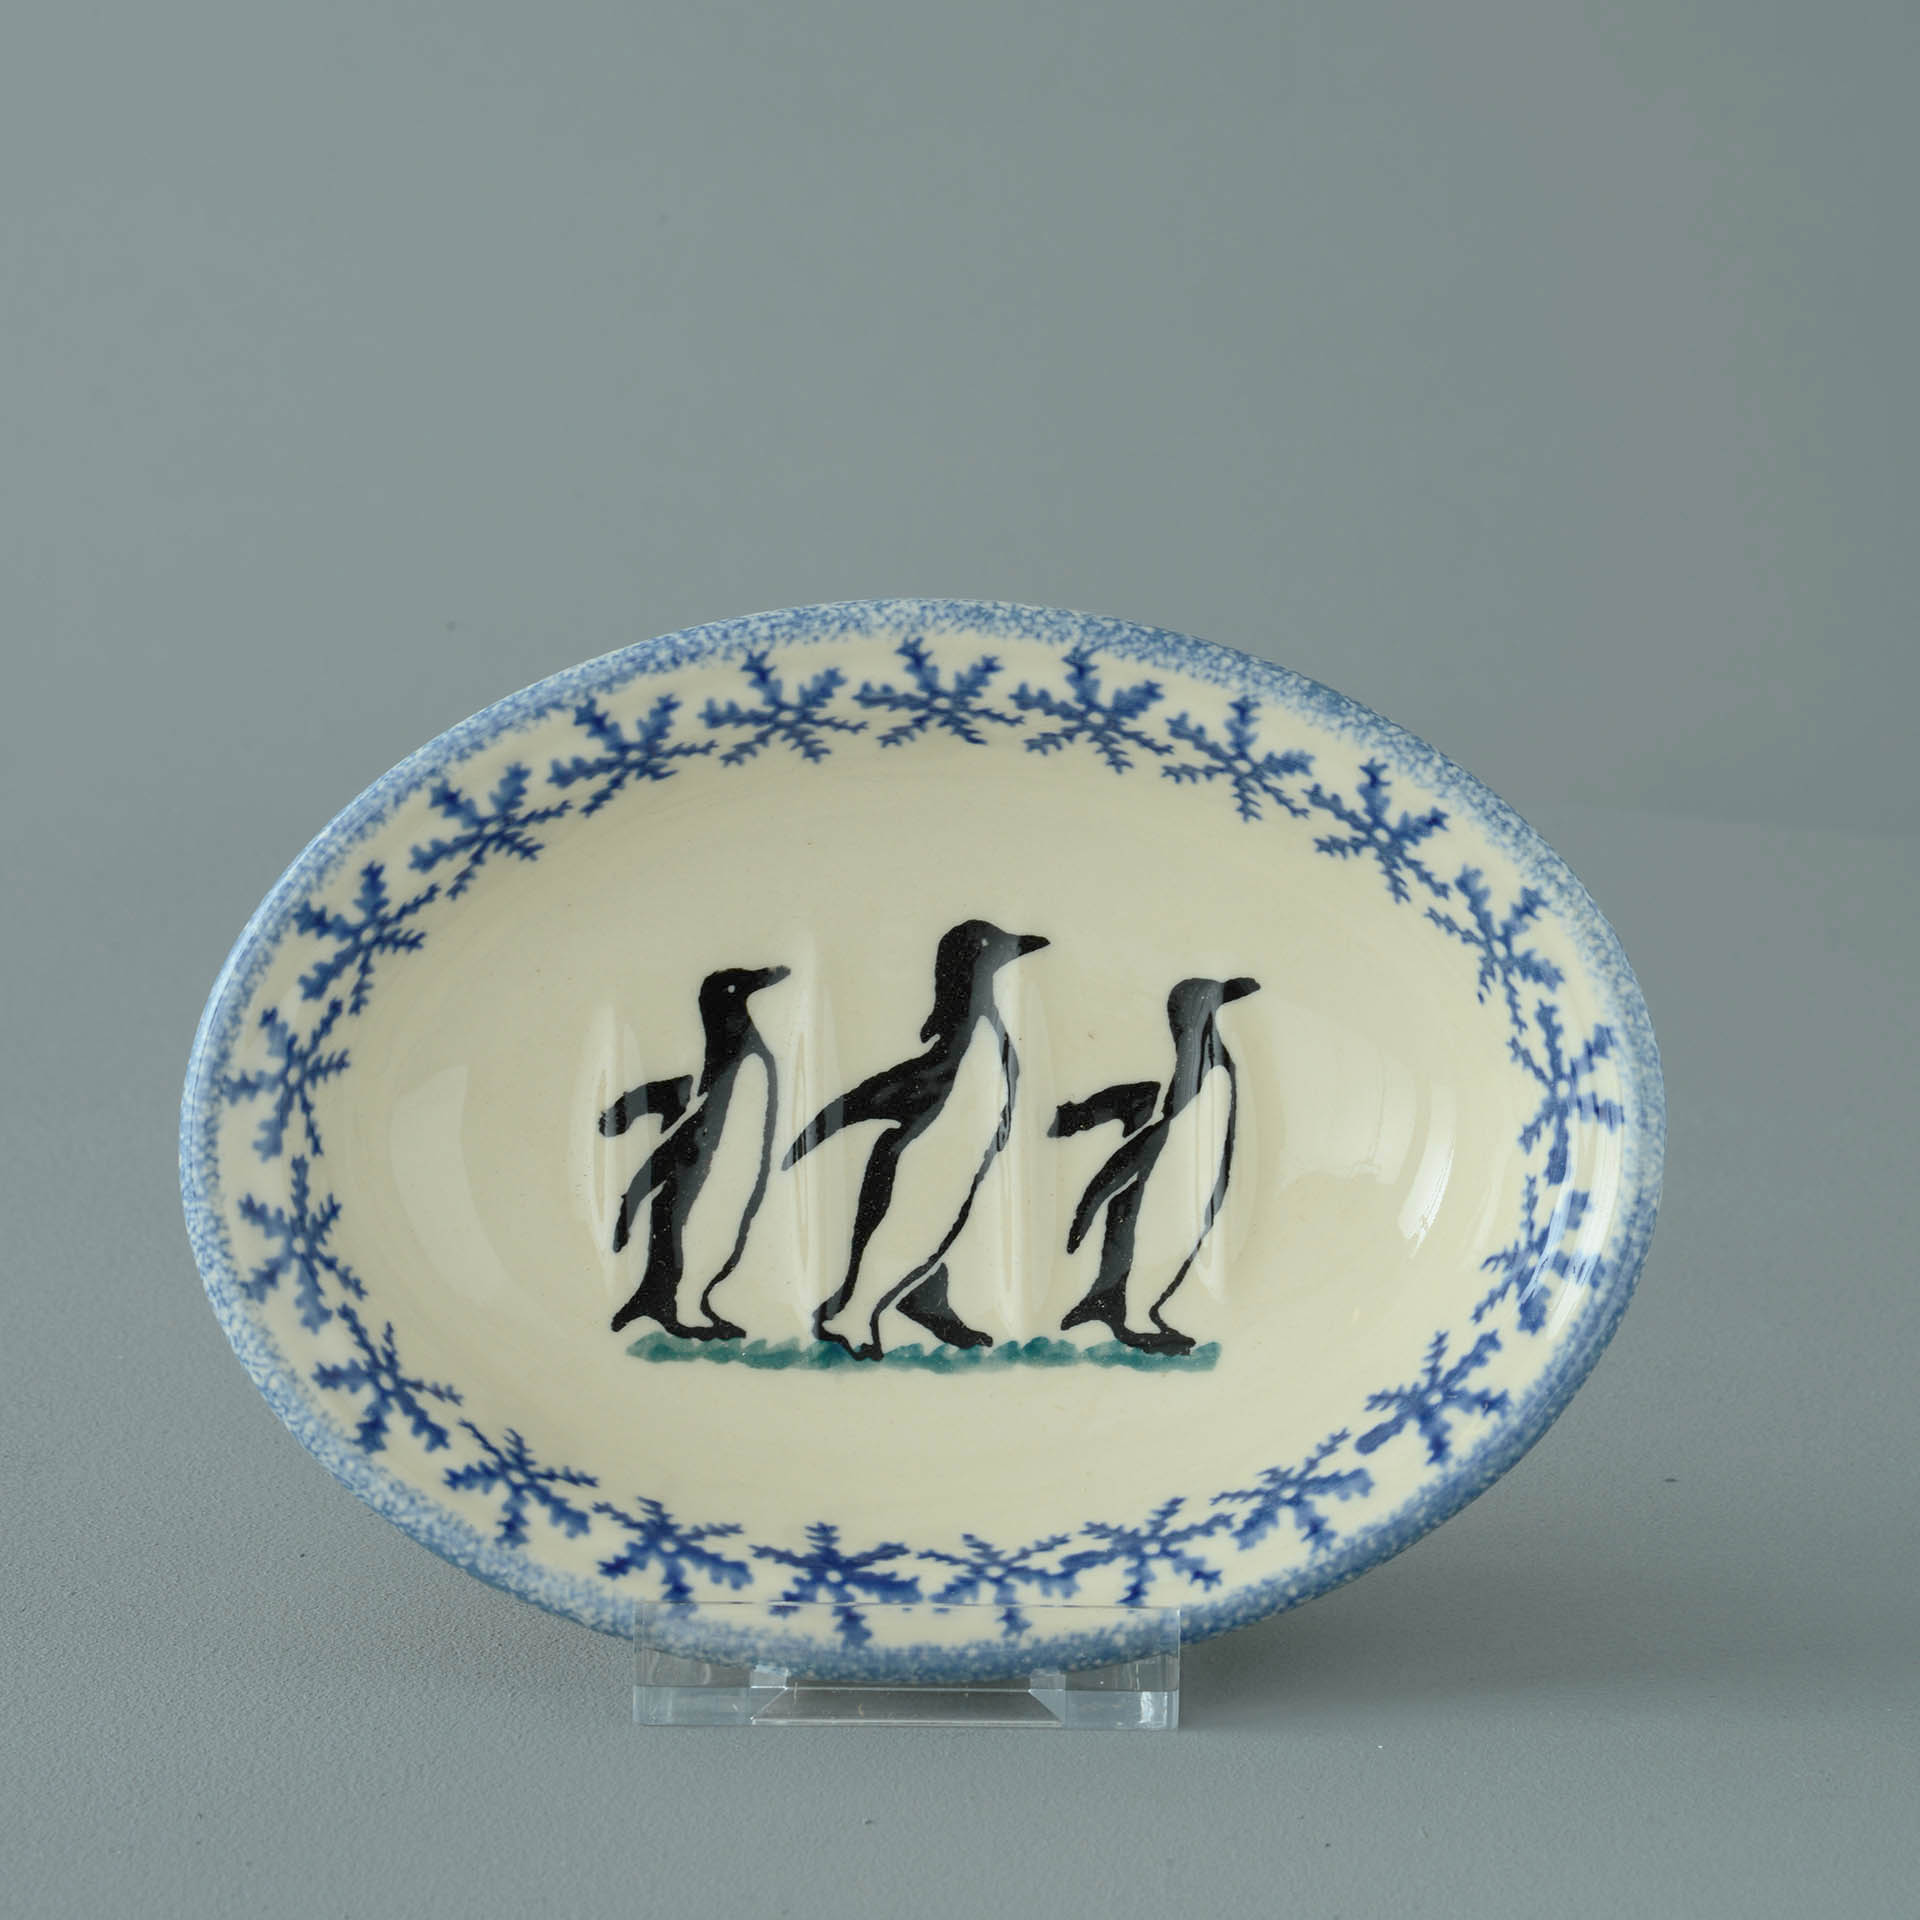 Penguin Soap Dish oval 11 x 15 x 4 cm.